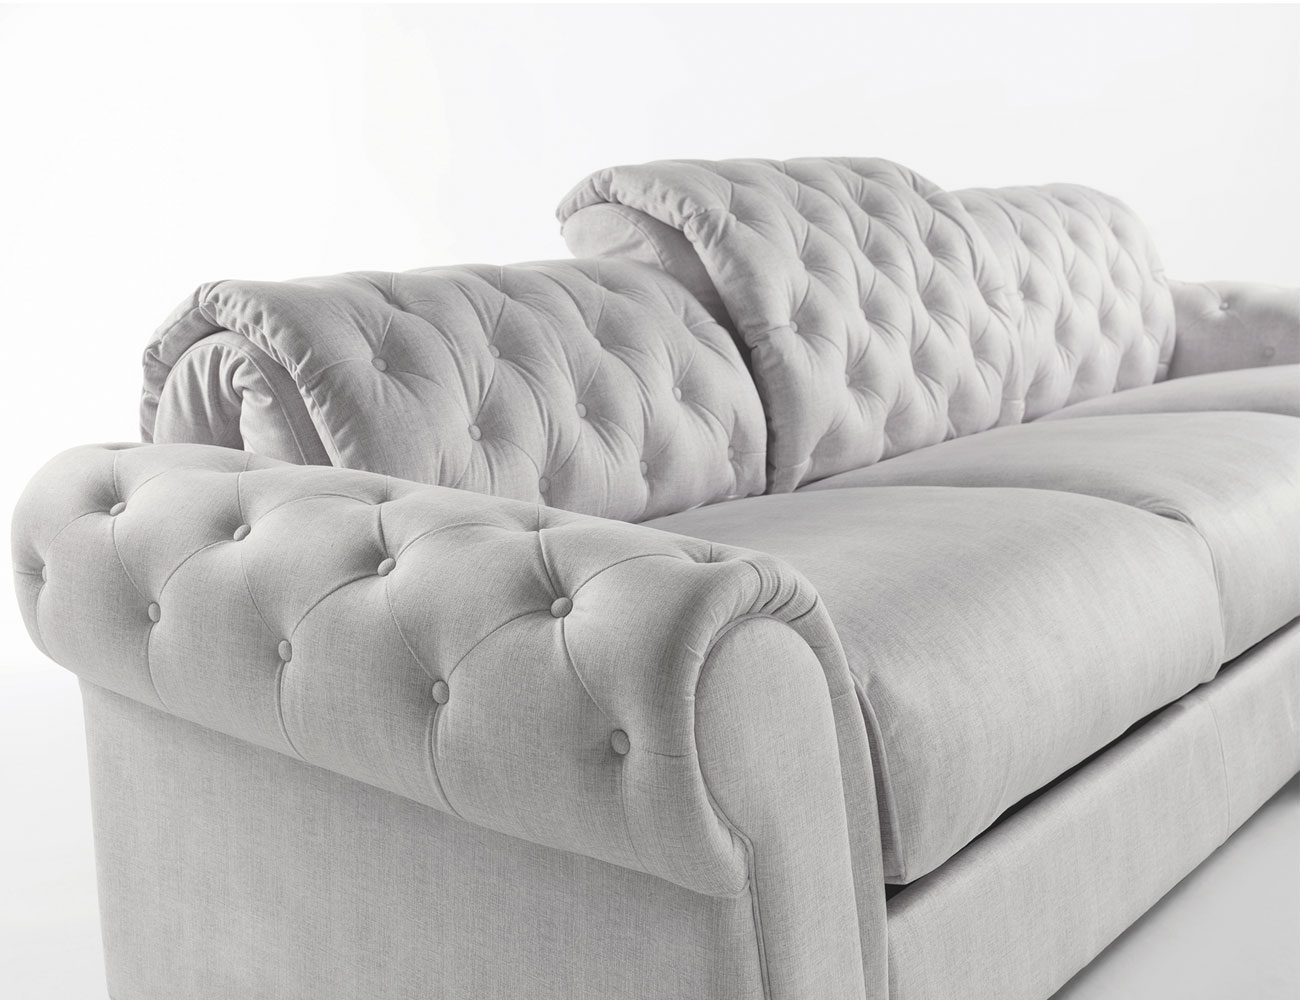 Sofa chaiselongue gran lujo decorativo capitone blanco tela 133